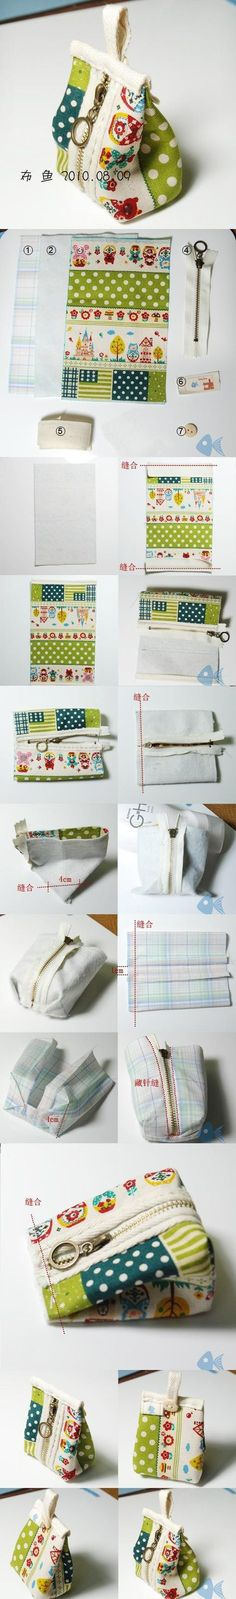 DIY Small Handbag DIY Projects | UsefulDIY.com Follow us on Facebook ==> https://www.facebook.com/UsefulDiy